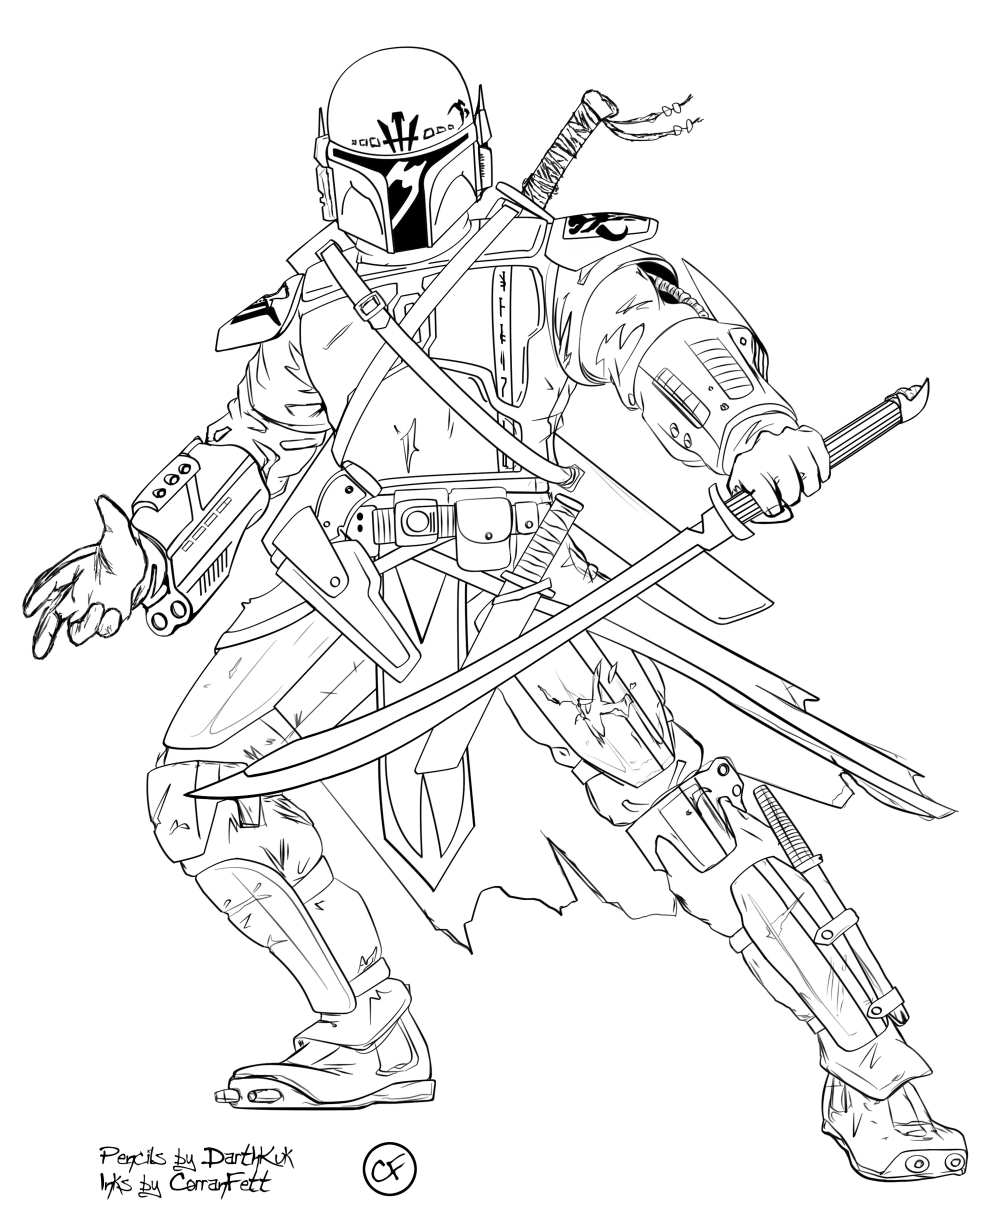 darth vader coloring pictures darth vader coloring pages best coloring pages for kids darth vader pictures coloring